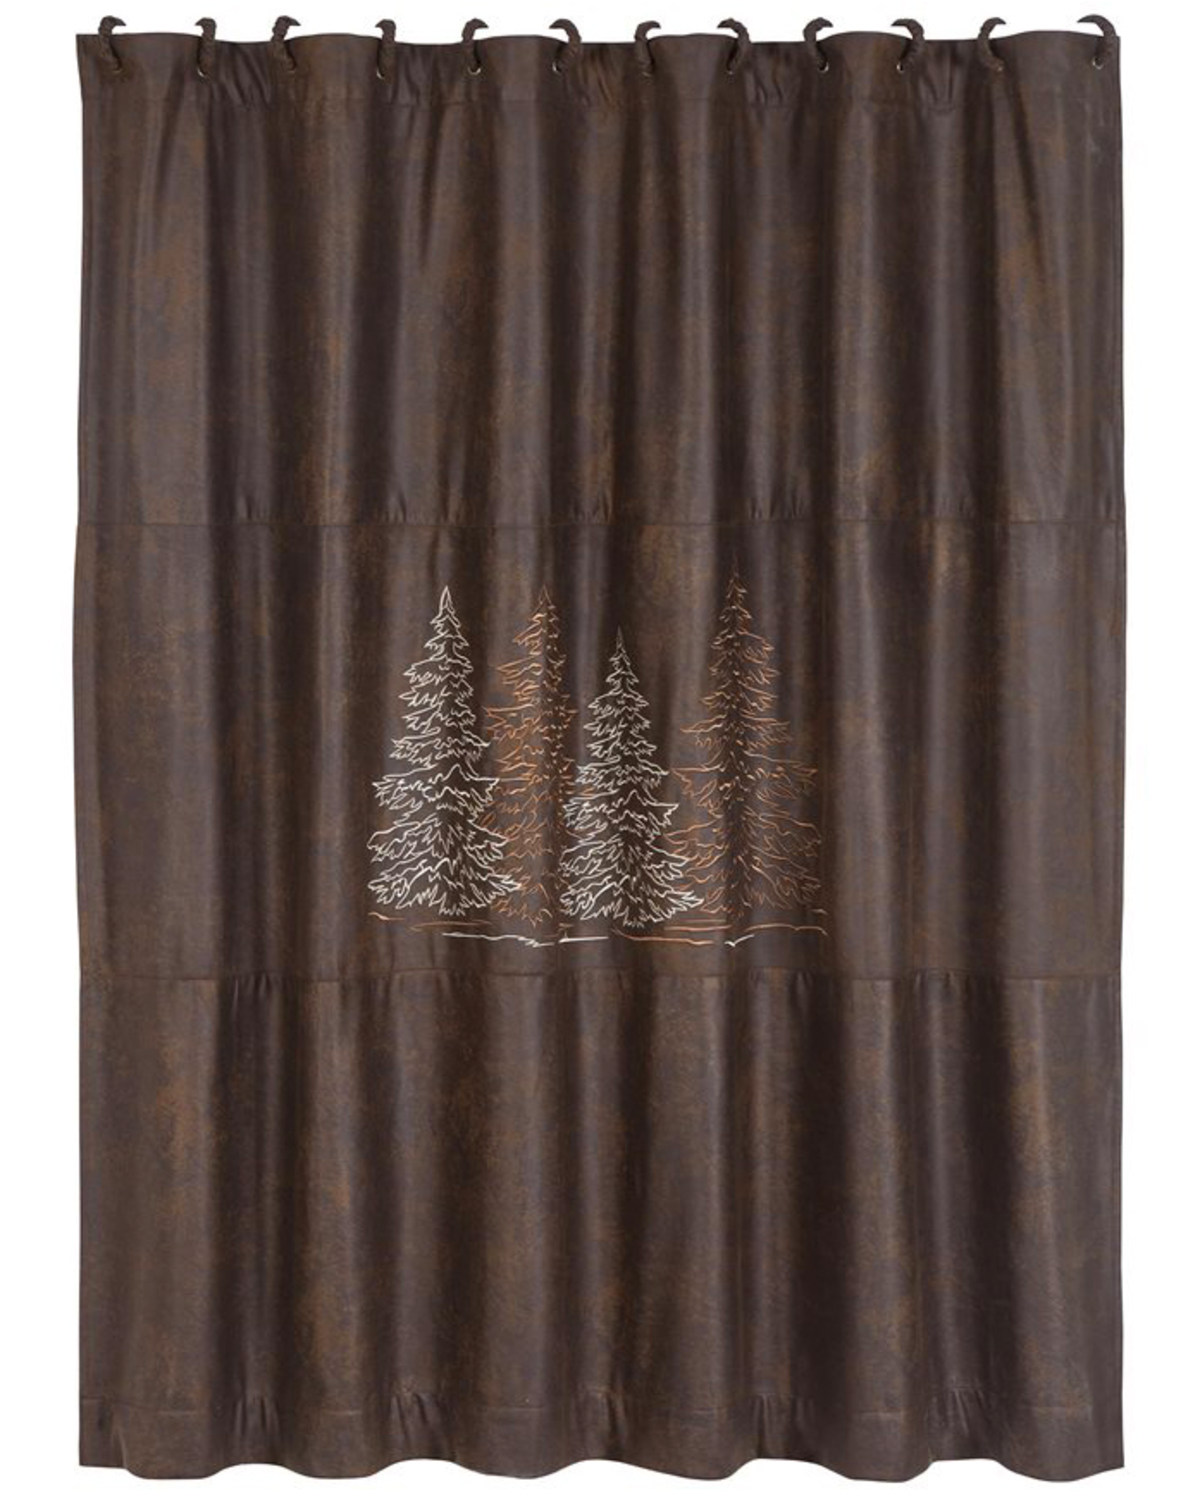 HiEnd Accents Chocolate Embroidered Tree Shower Curtain Hi Res